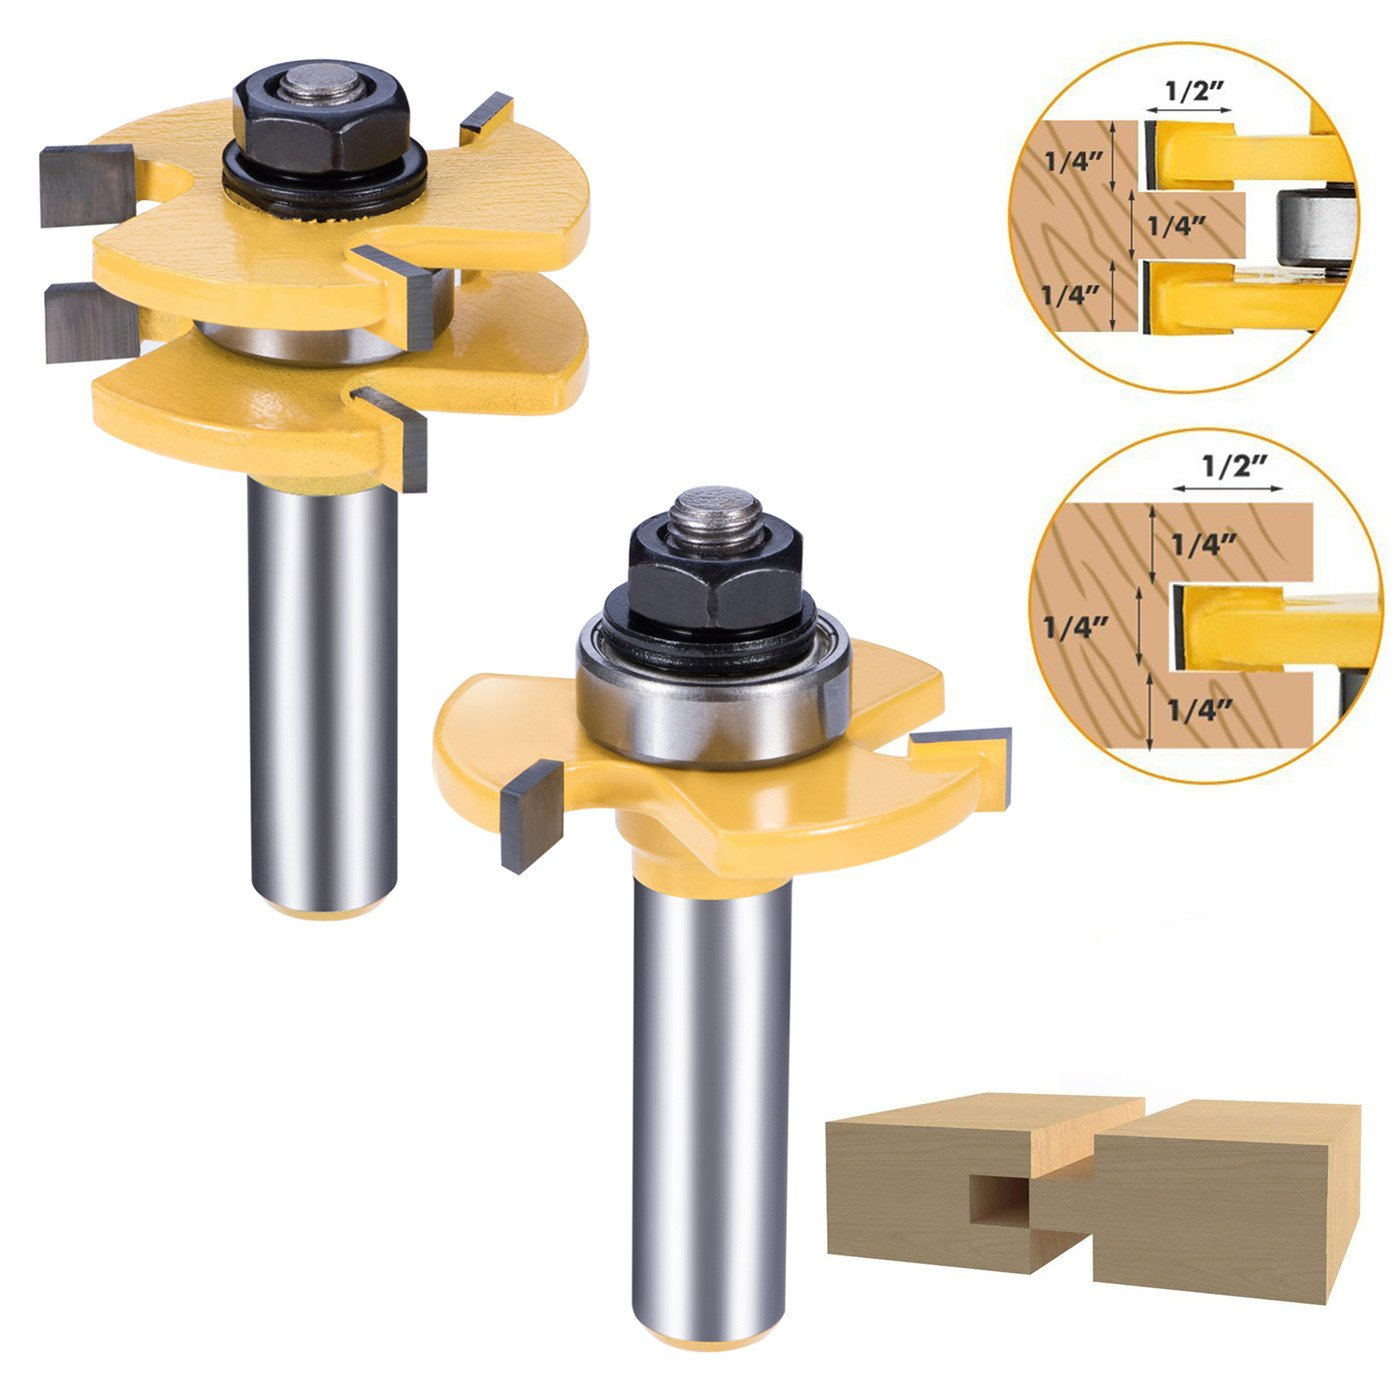 Asel Tongue And Groove Set, Router Bit Set, Wood Door